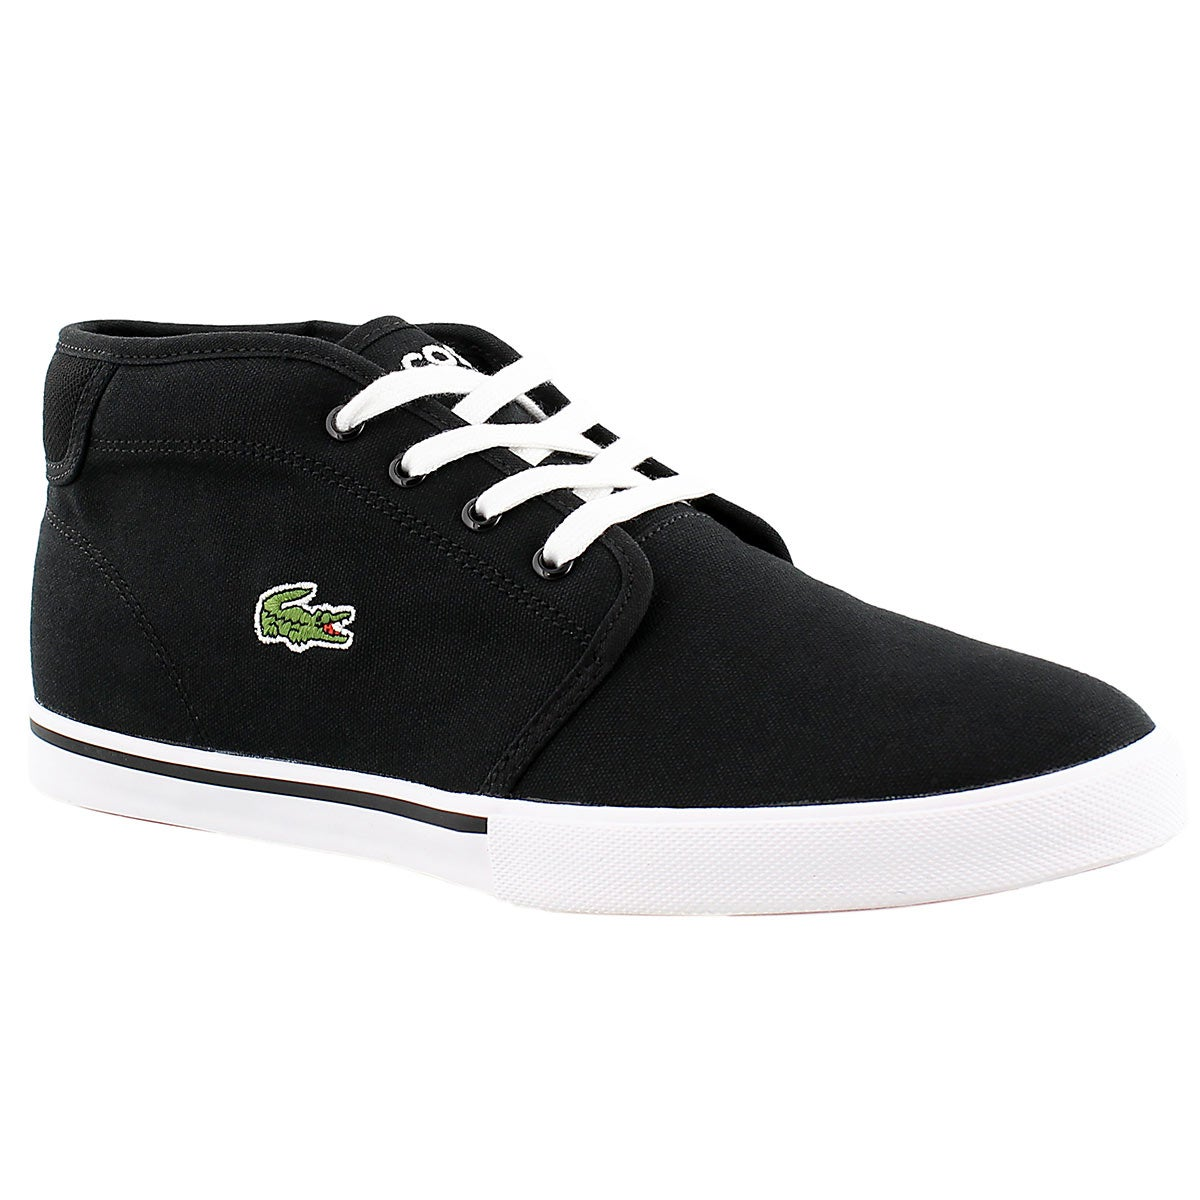 Mns Ampthill 2 black fashion sneaker